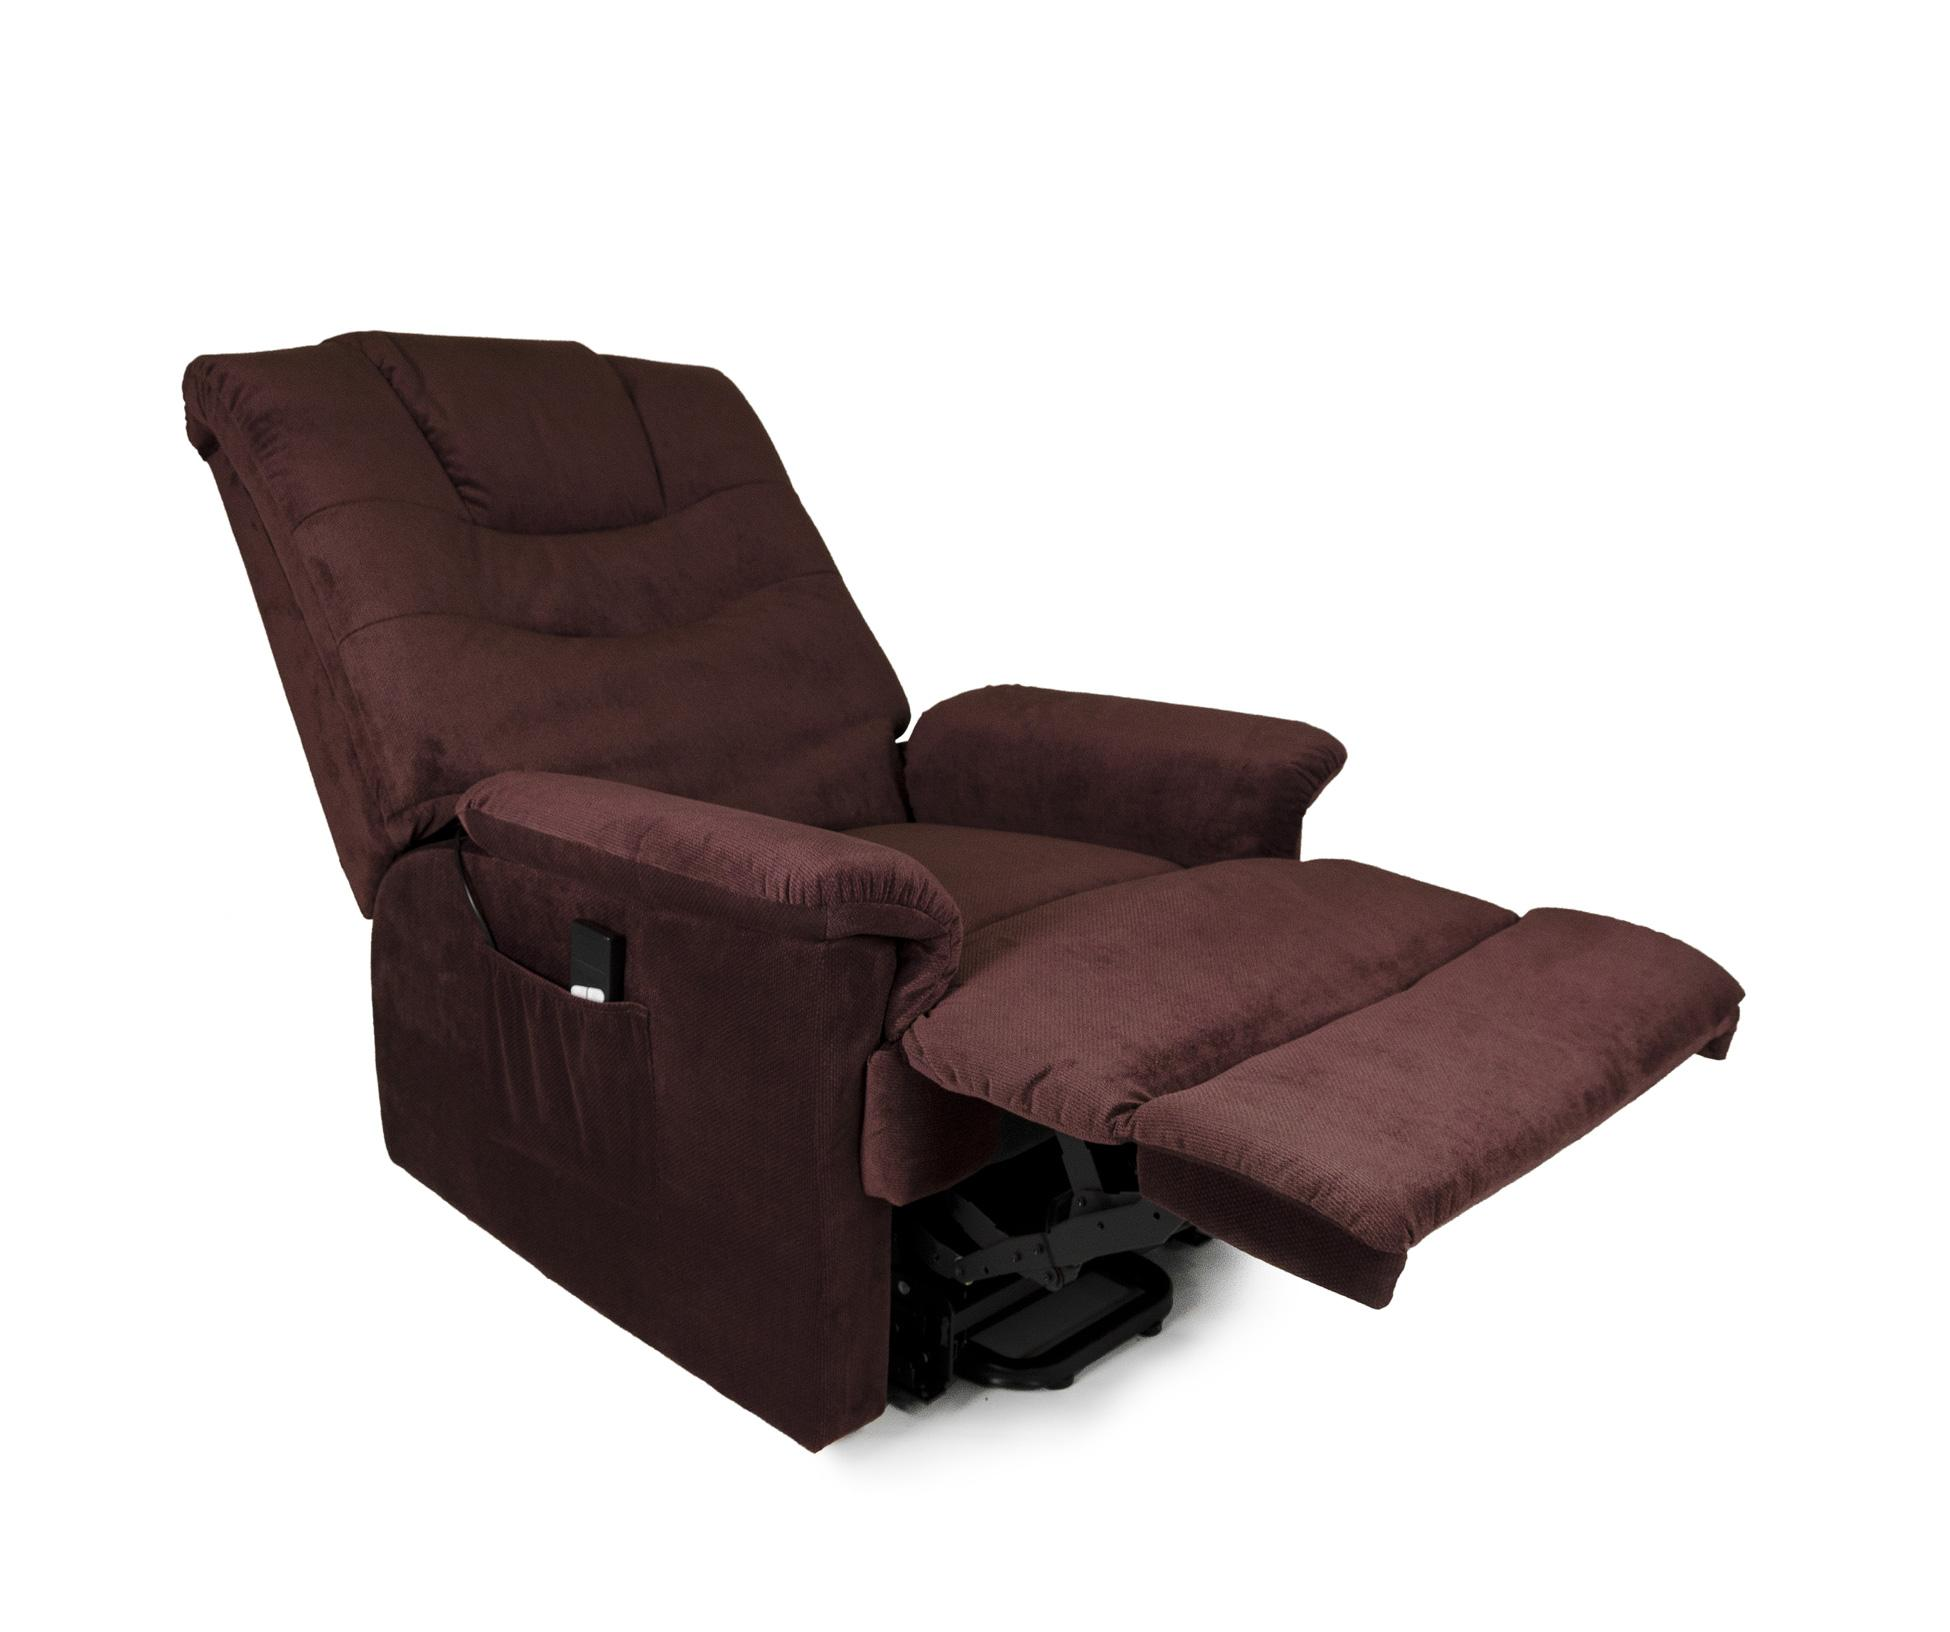 Electric recliner chair MD 39